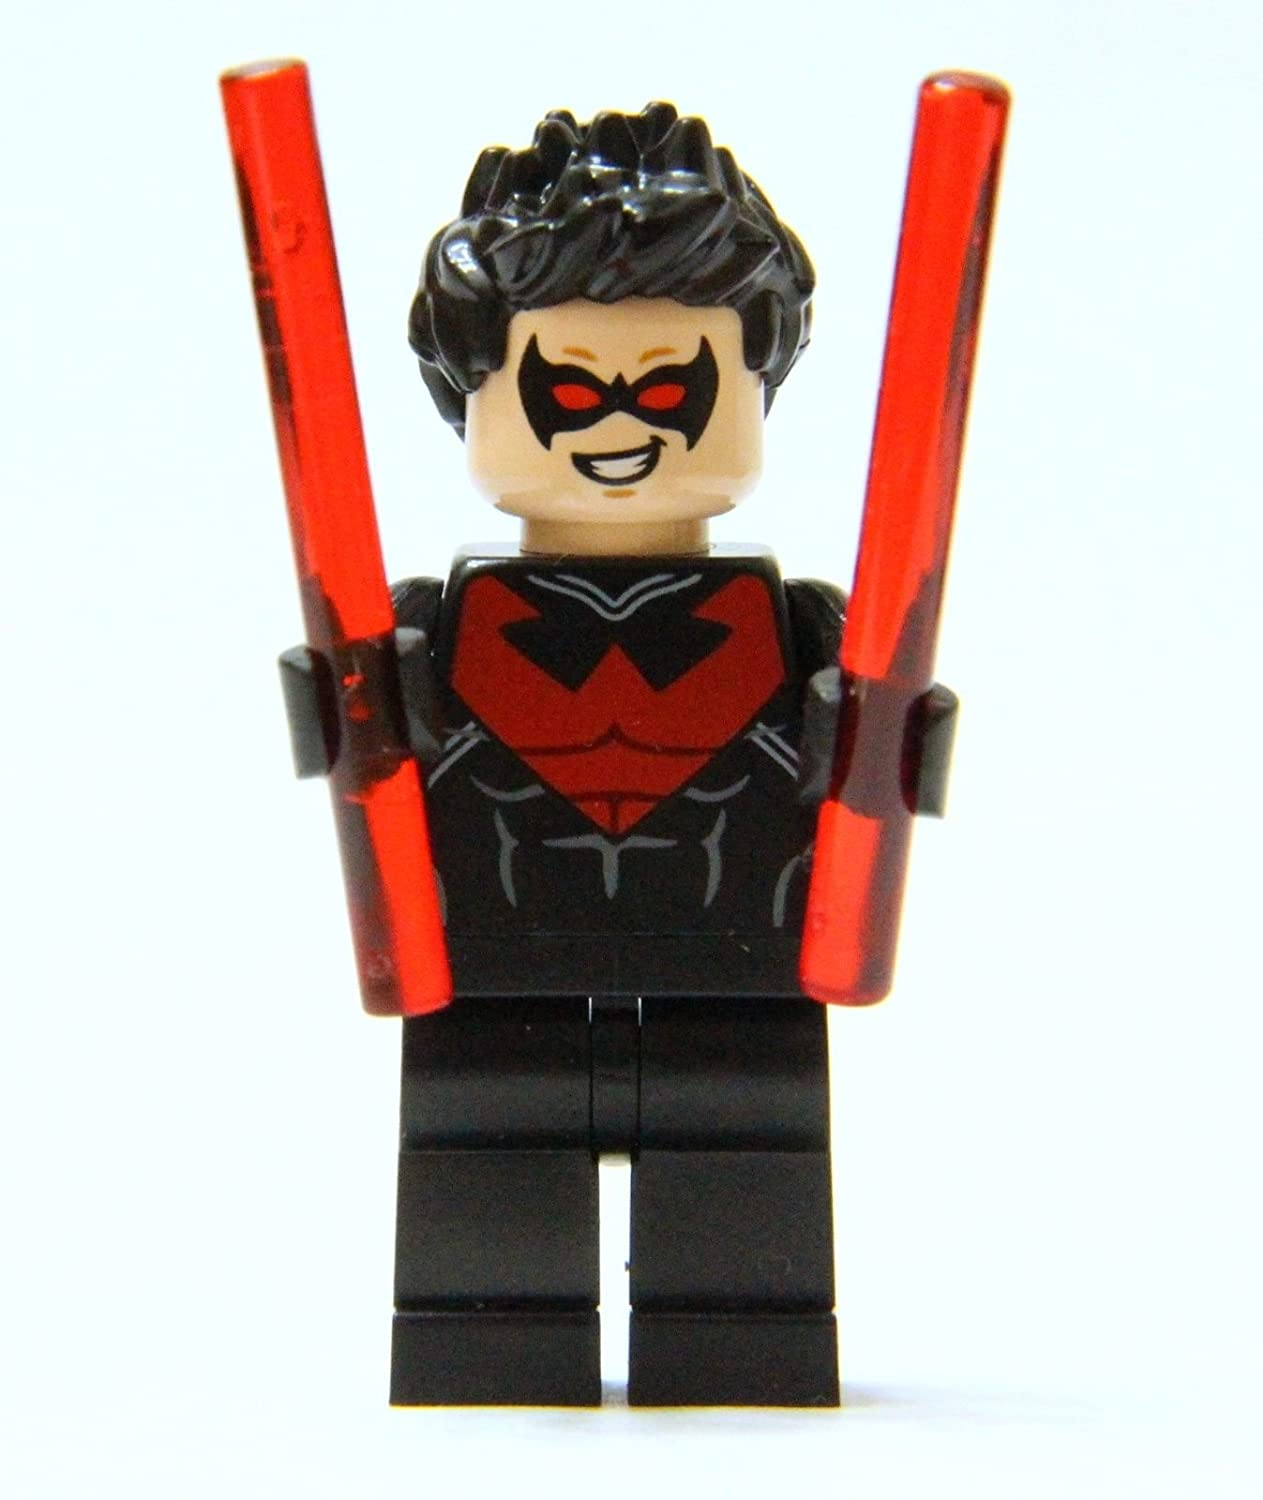 Amazoncom LEGO Nightwing minifigure Red Version  includes 2